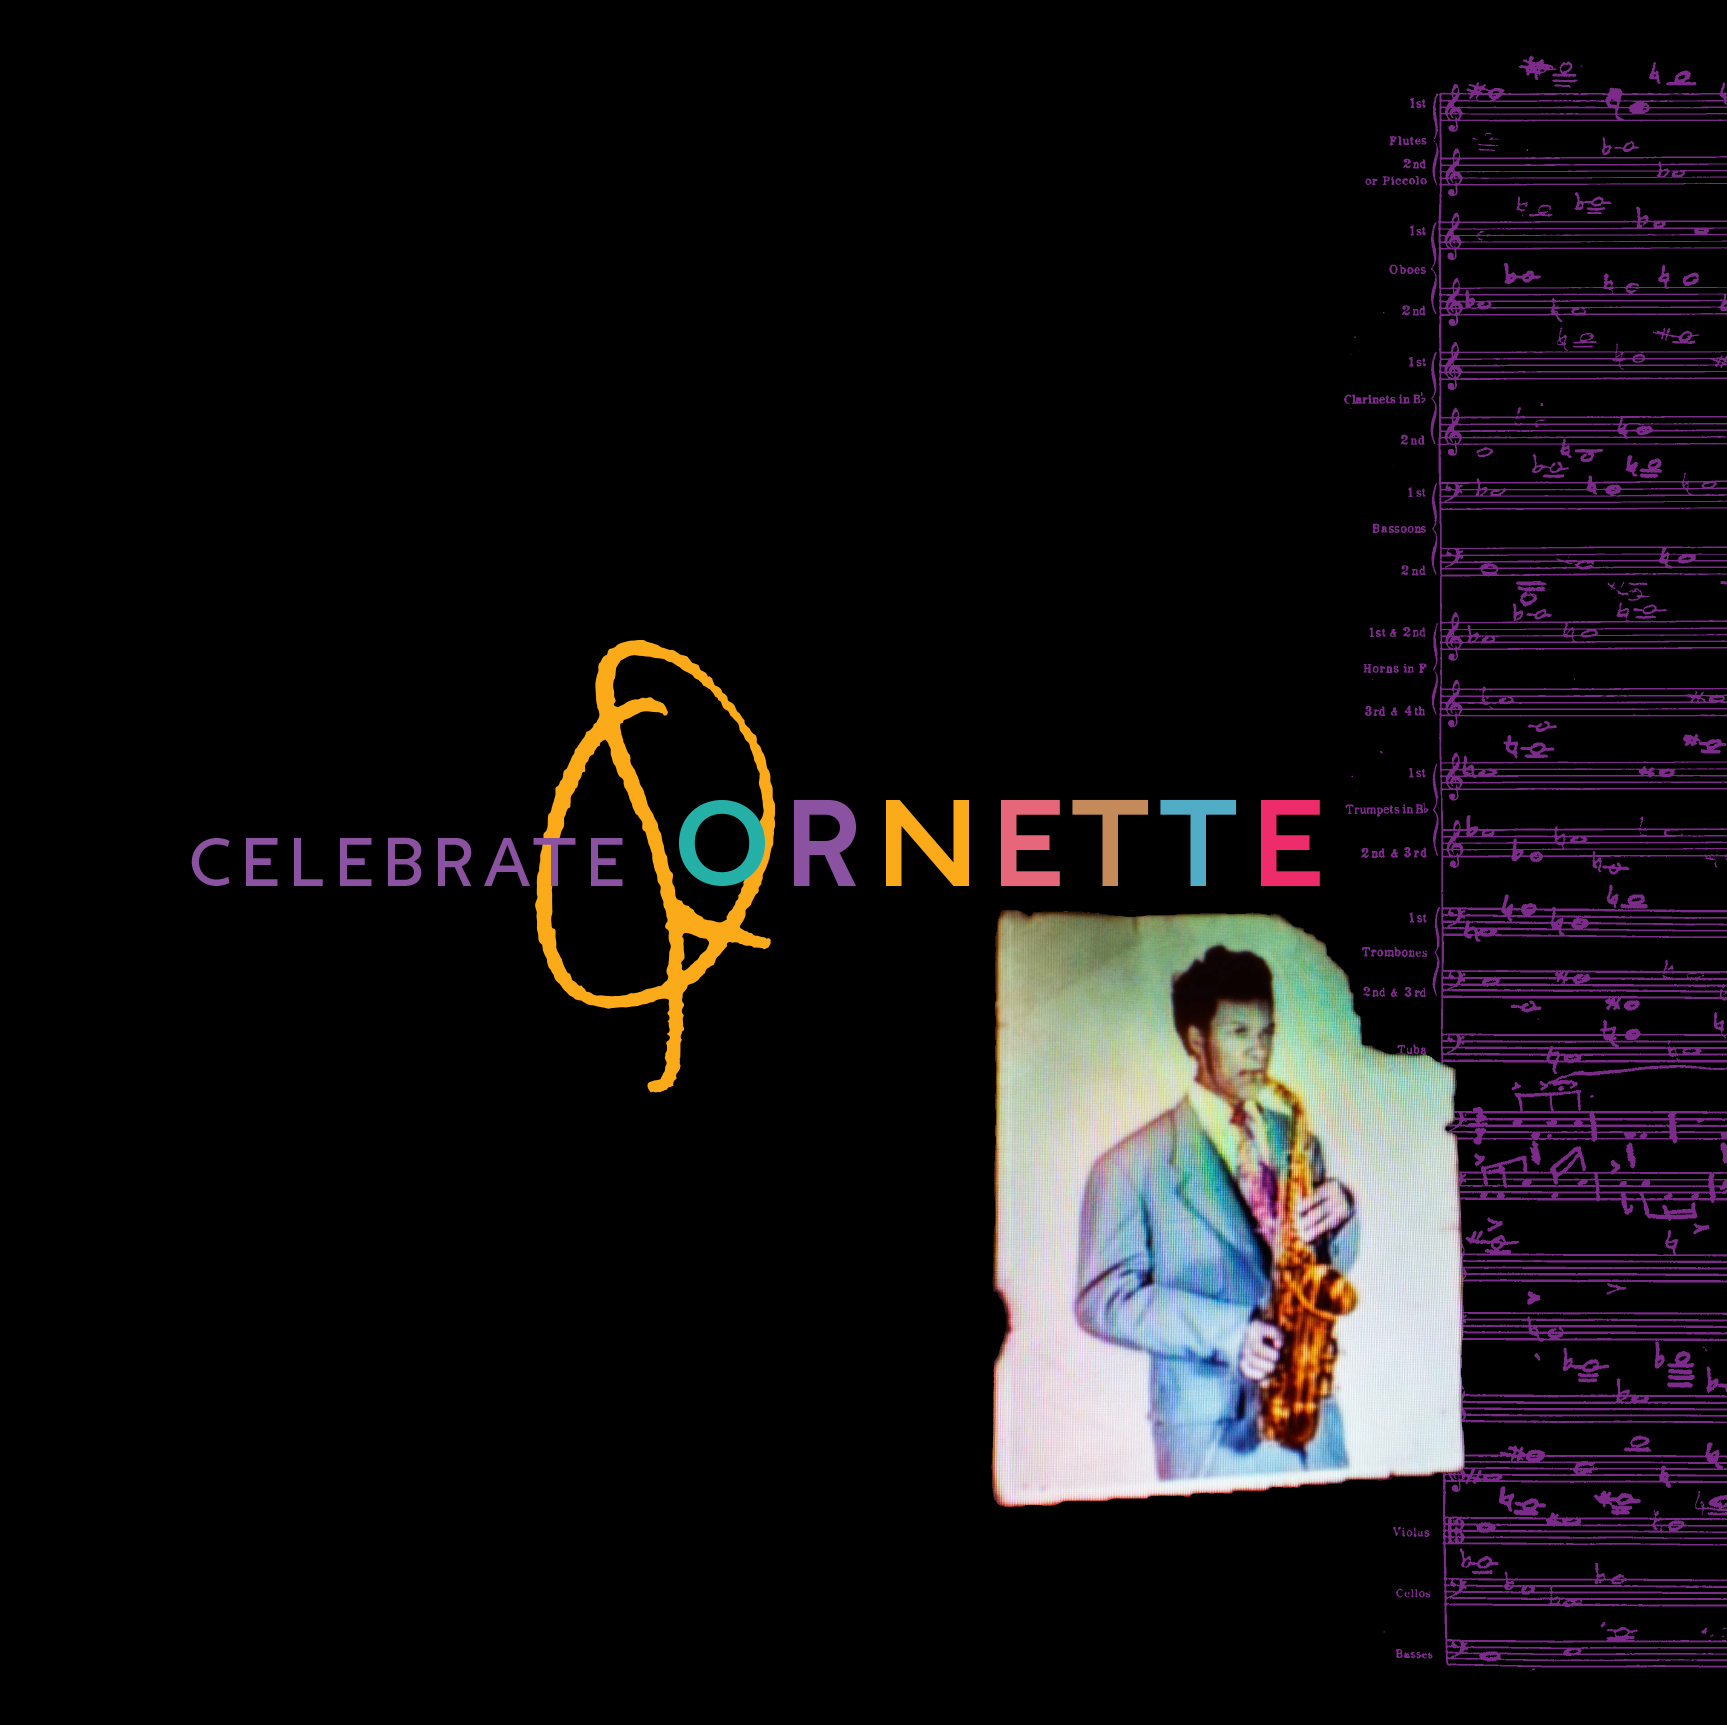 10000 VARIOUS ARTISTS - Celebrate Ornette cover